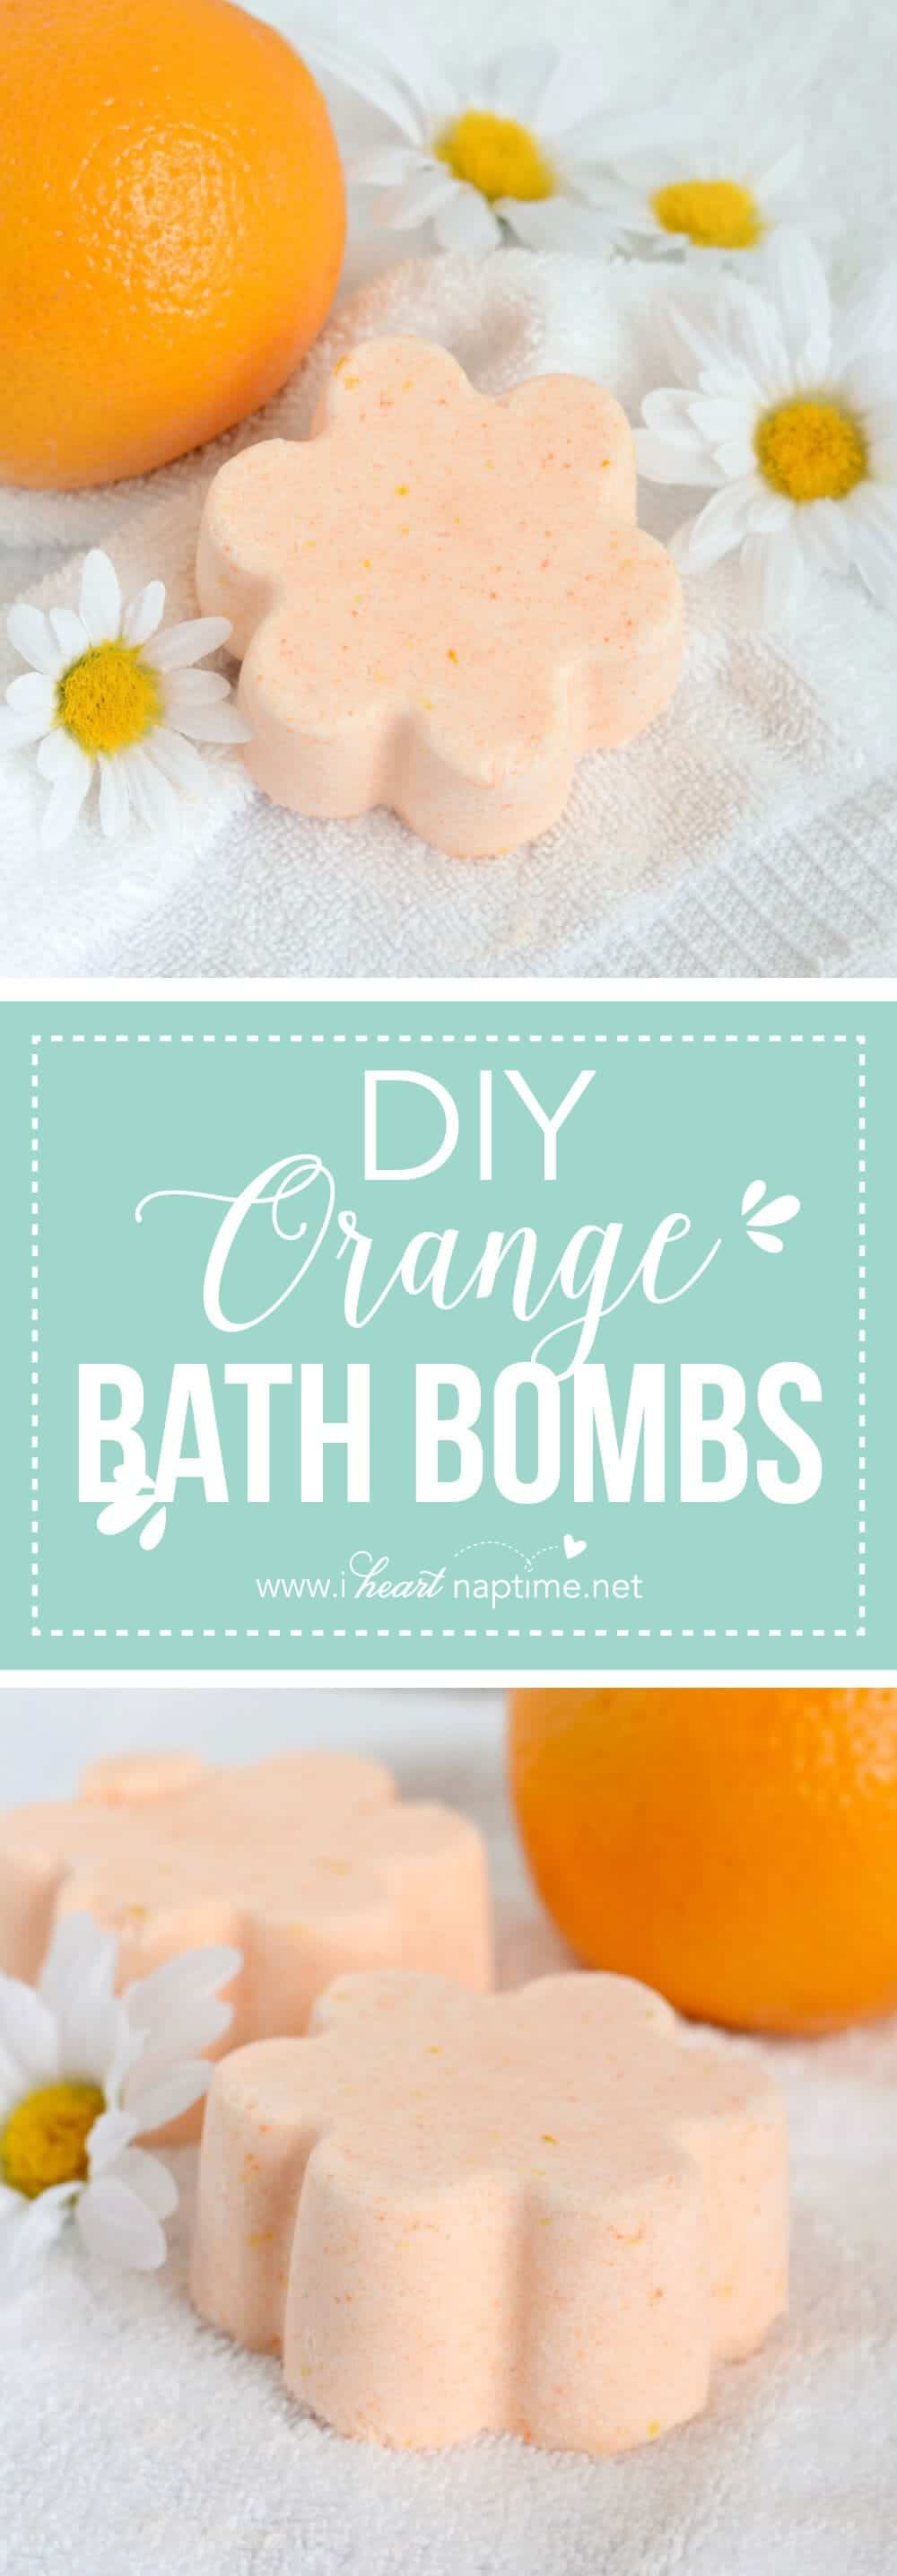 Easy and inexpensive diy bath bombs i heart naptime diy bath bombs easy to make bath bombs recipe with a few simple ingredients solutioingenieria Gallery